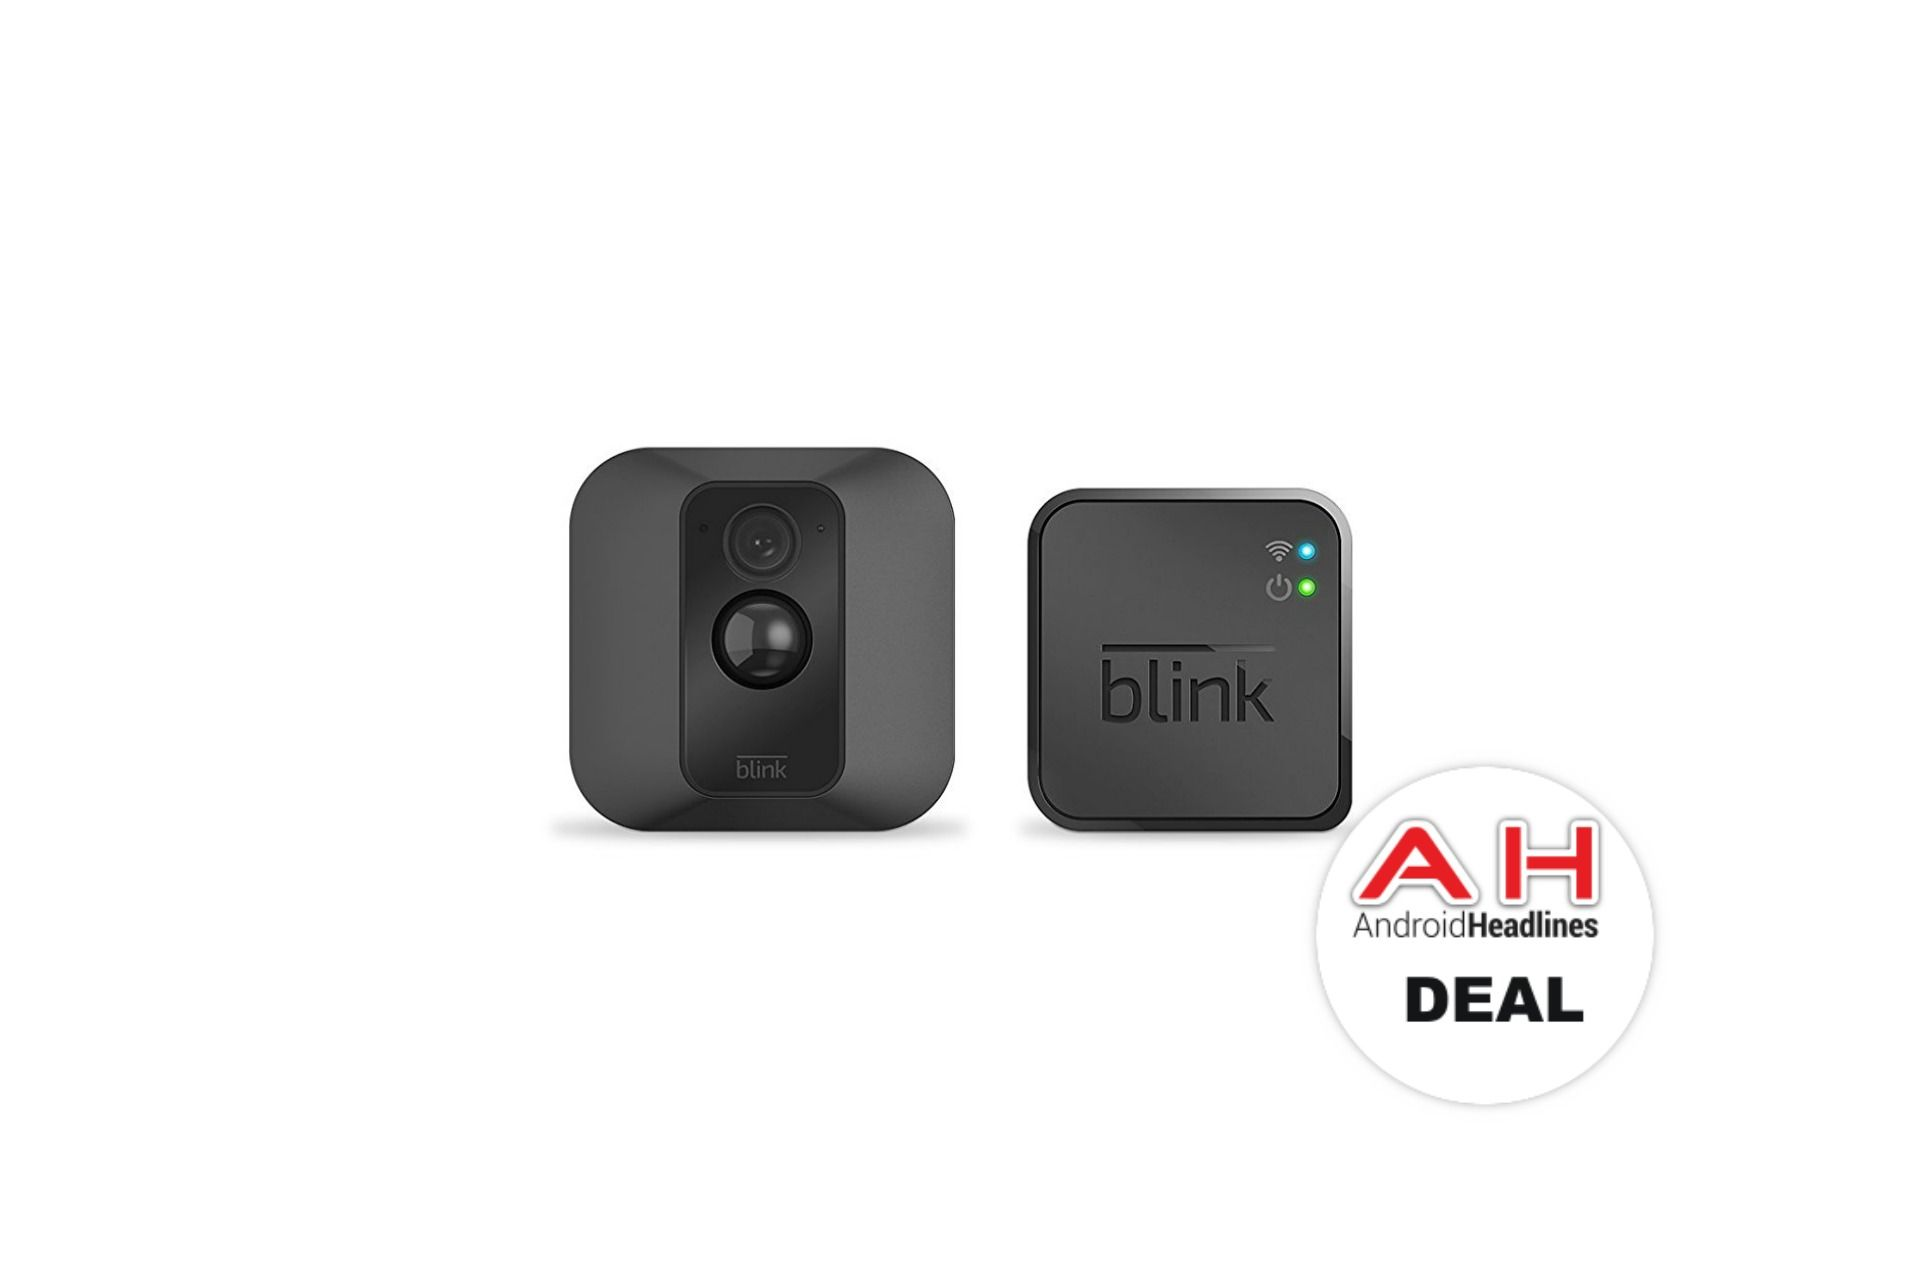 Deal Blink Xt Home Security Camera System Starting At $75